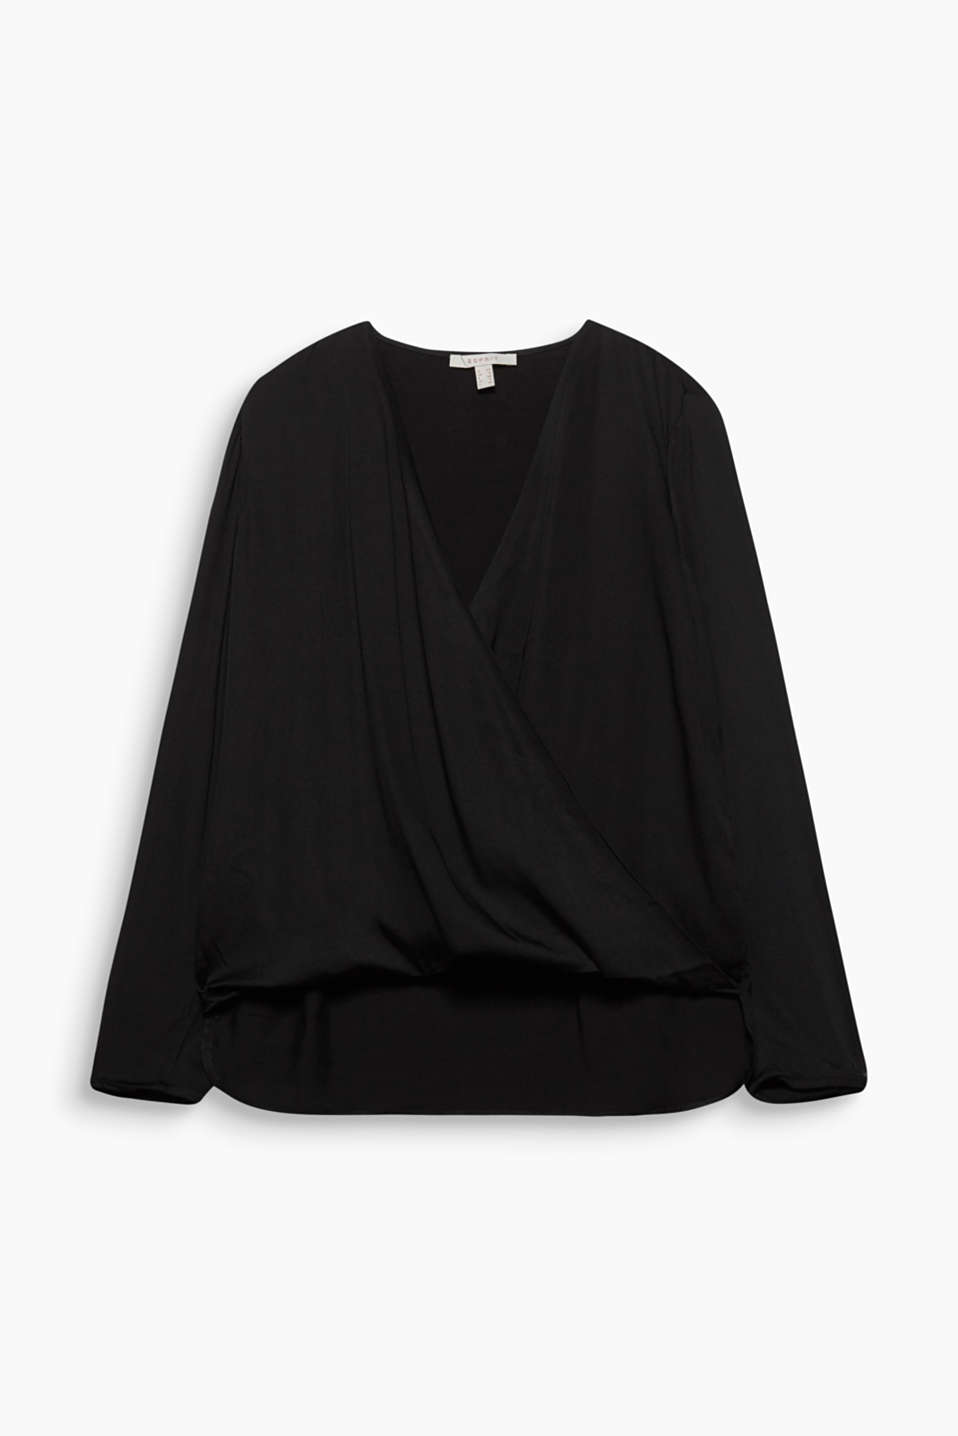 This silky blouse with a fixed wrap-over effect and high-low hem is both feminine and casual!